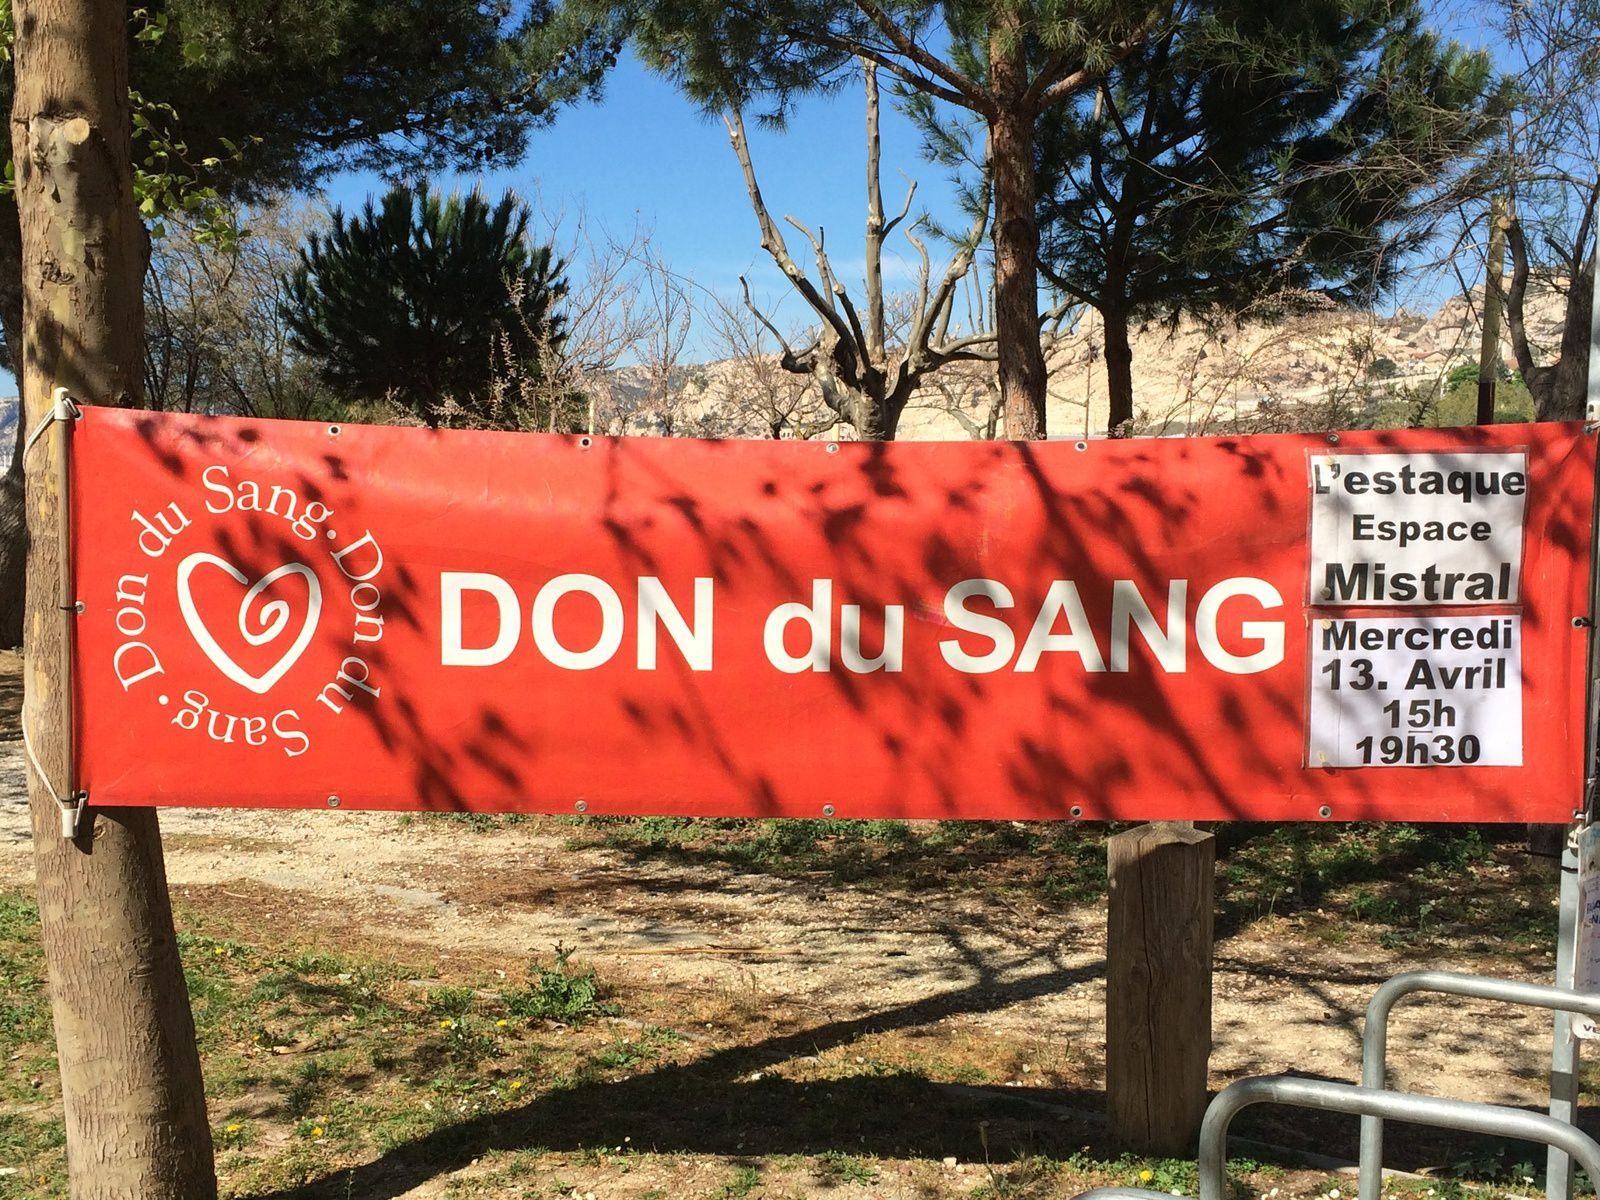 Don du Sang Estaque - Mercredi 13 Avril